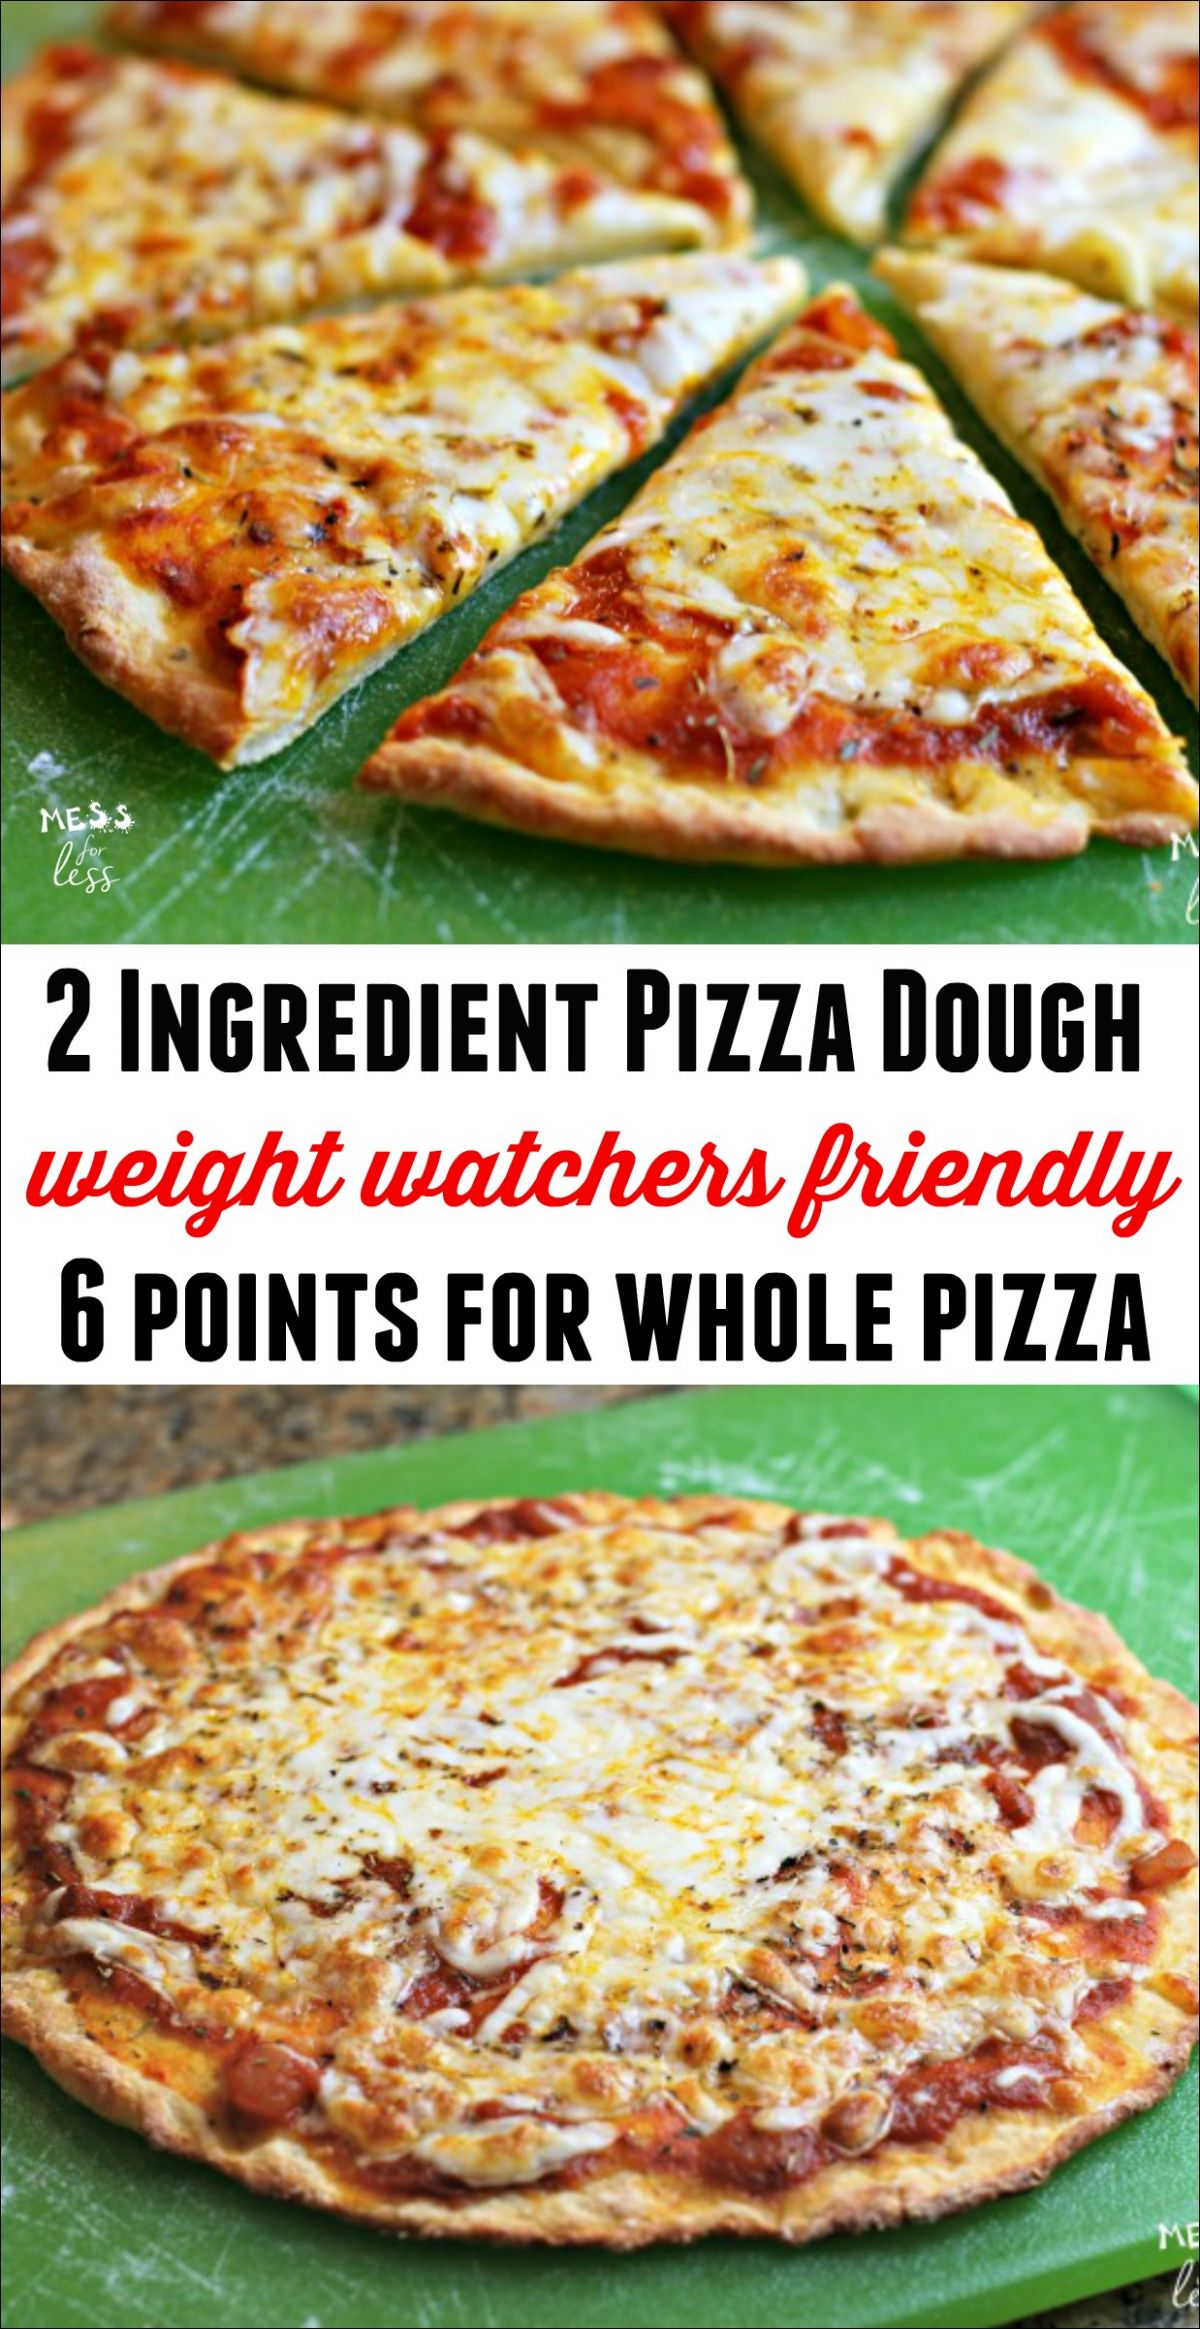 10 Ingredient Pizza Dough - Pizza Recipes Ready Made Dough